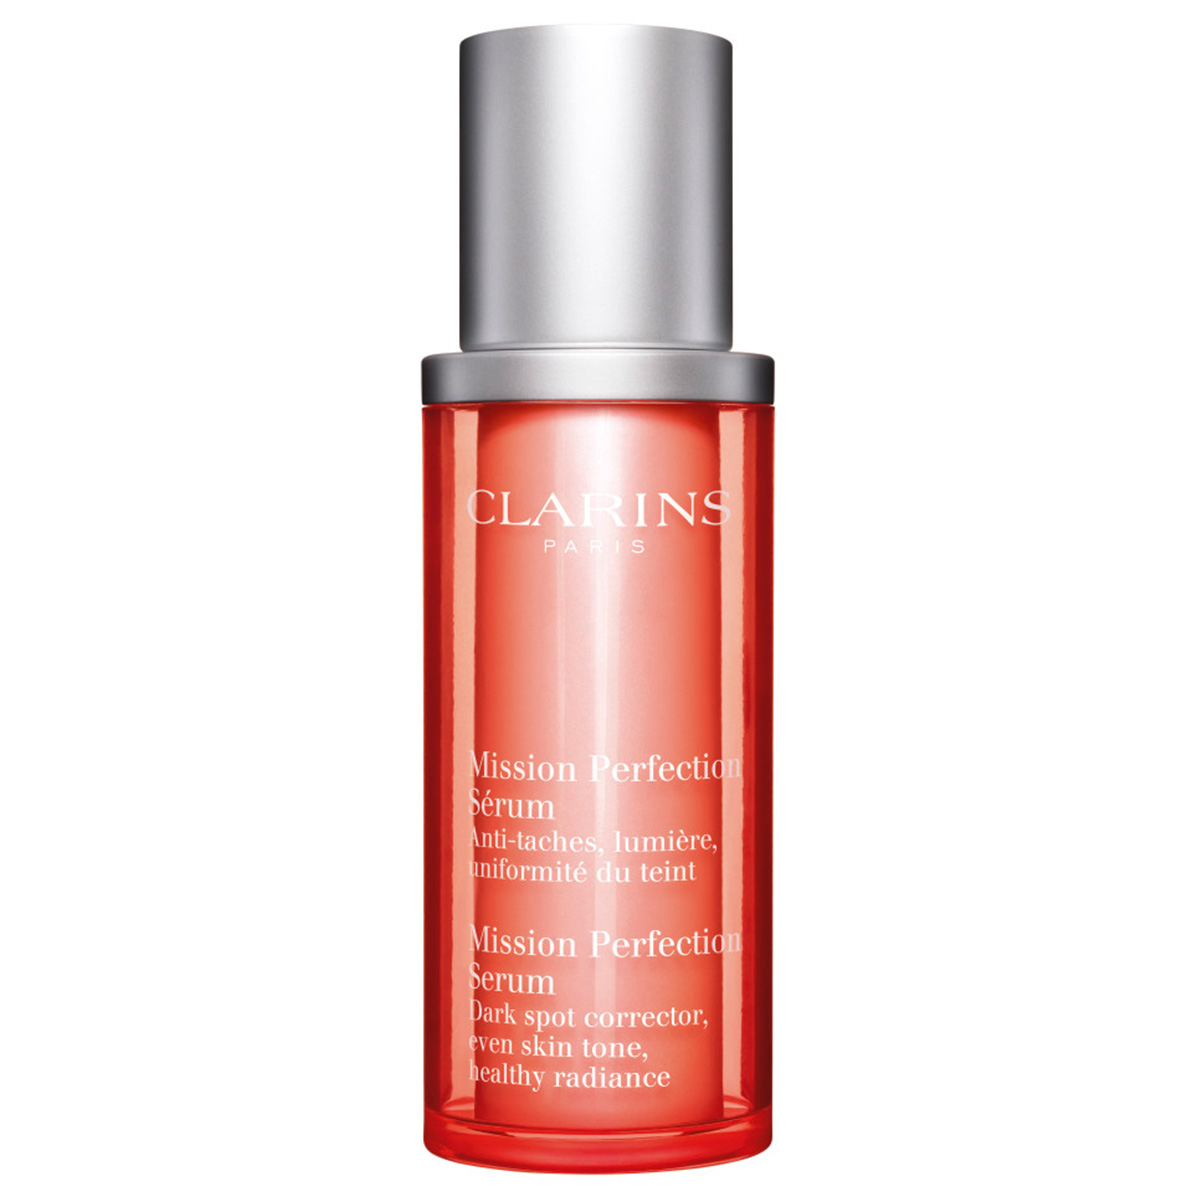 Clarins  Mission perfection serum  siero 30 ml